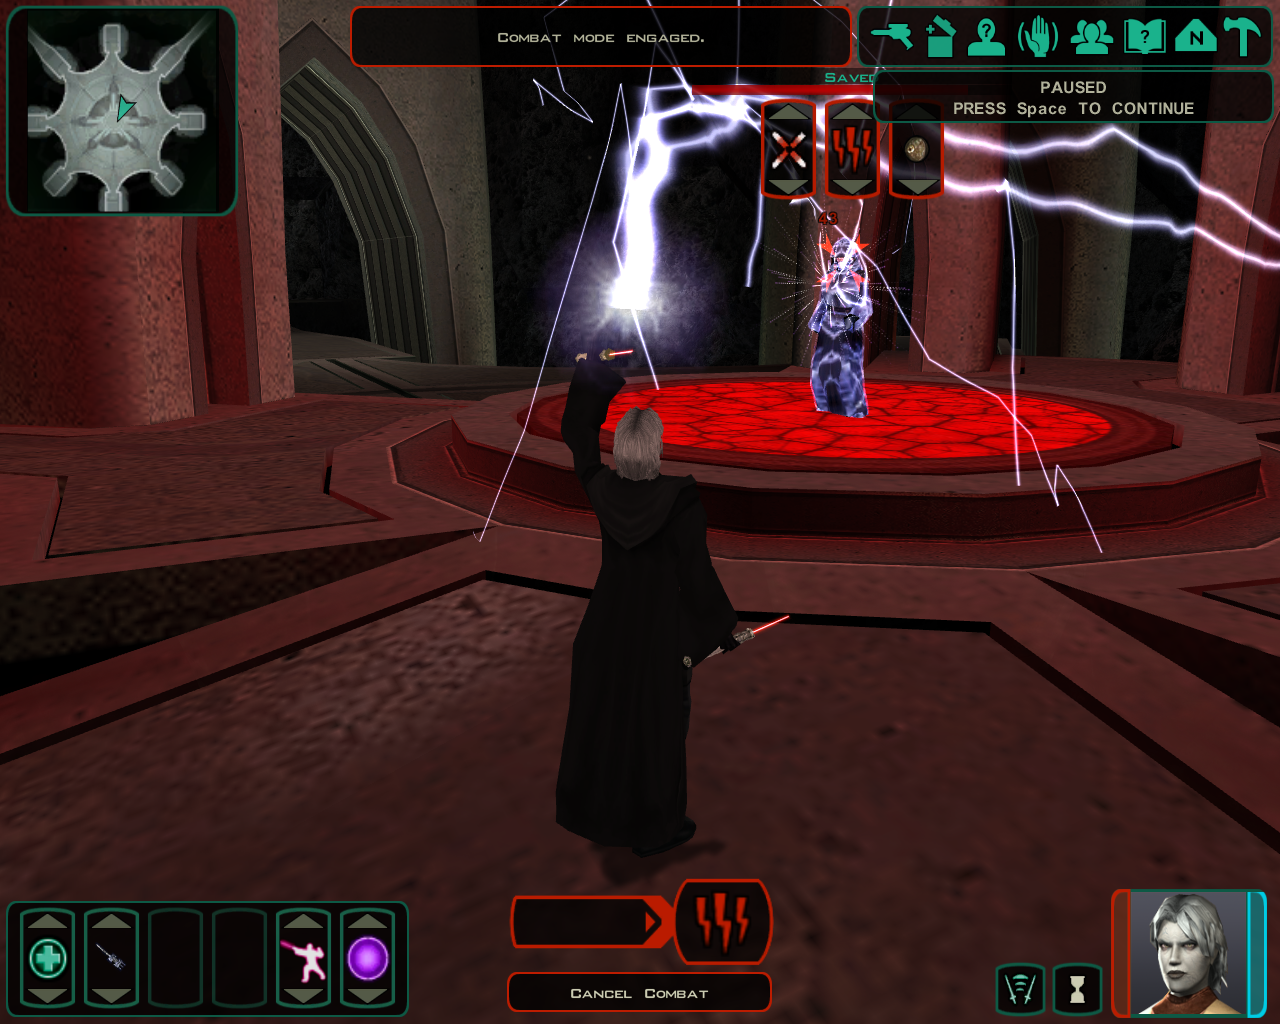 Force Storm Image Star Wars Knights Of The Old Republic Ii Mod Db